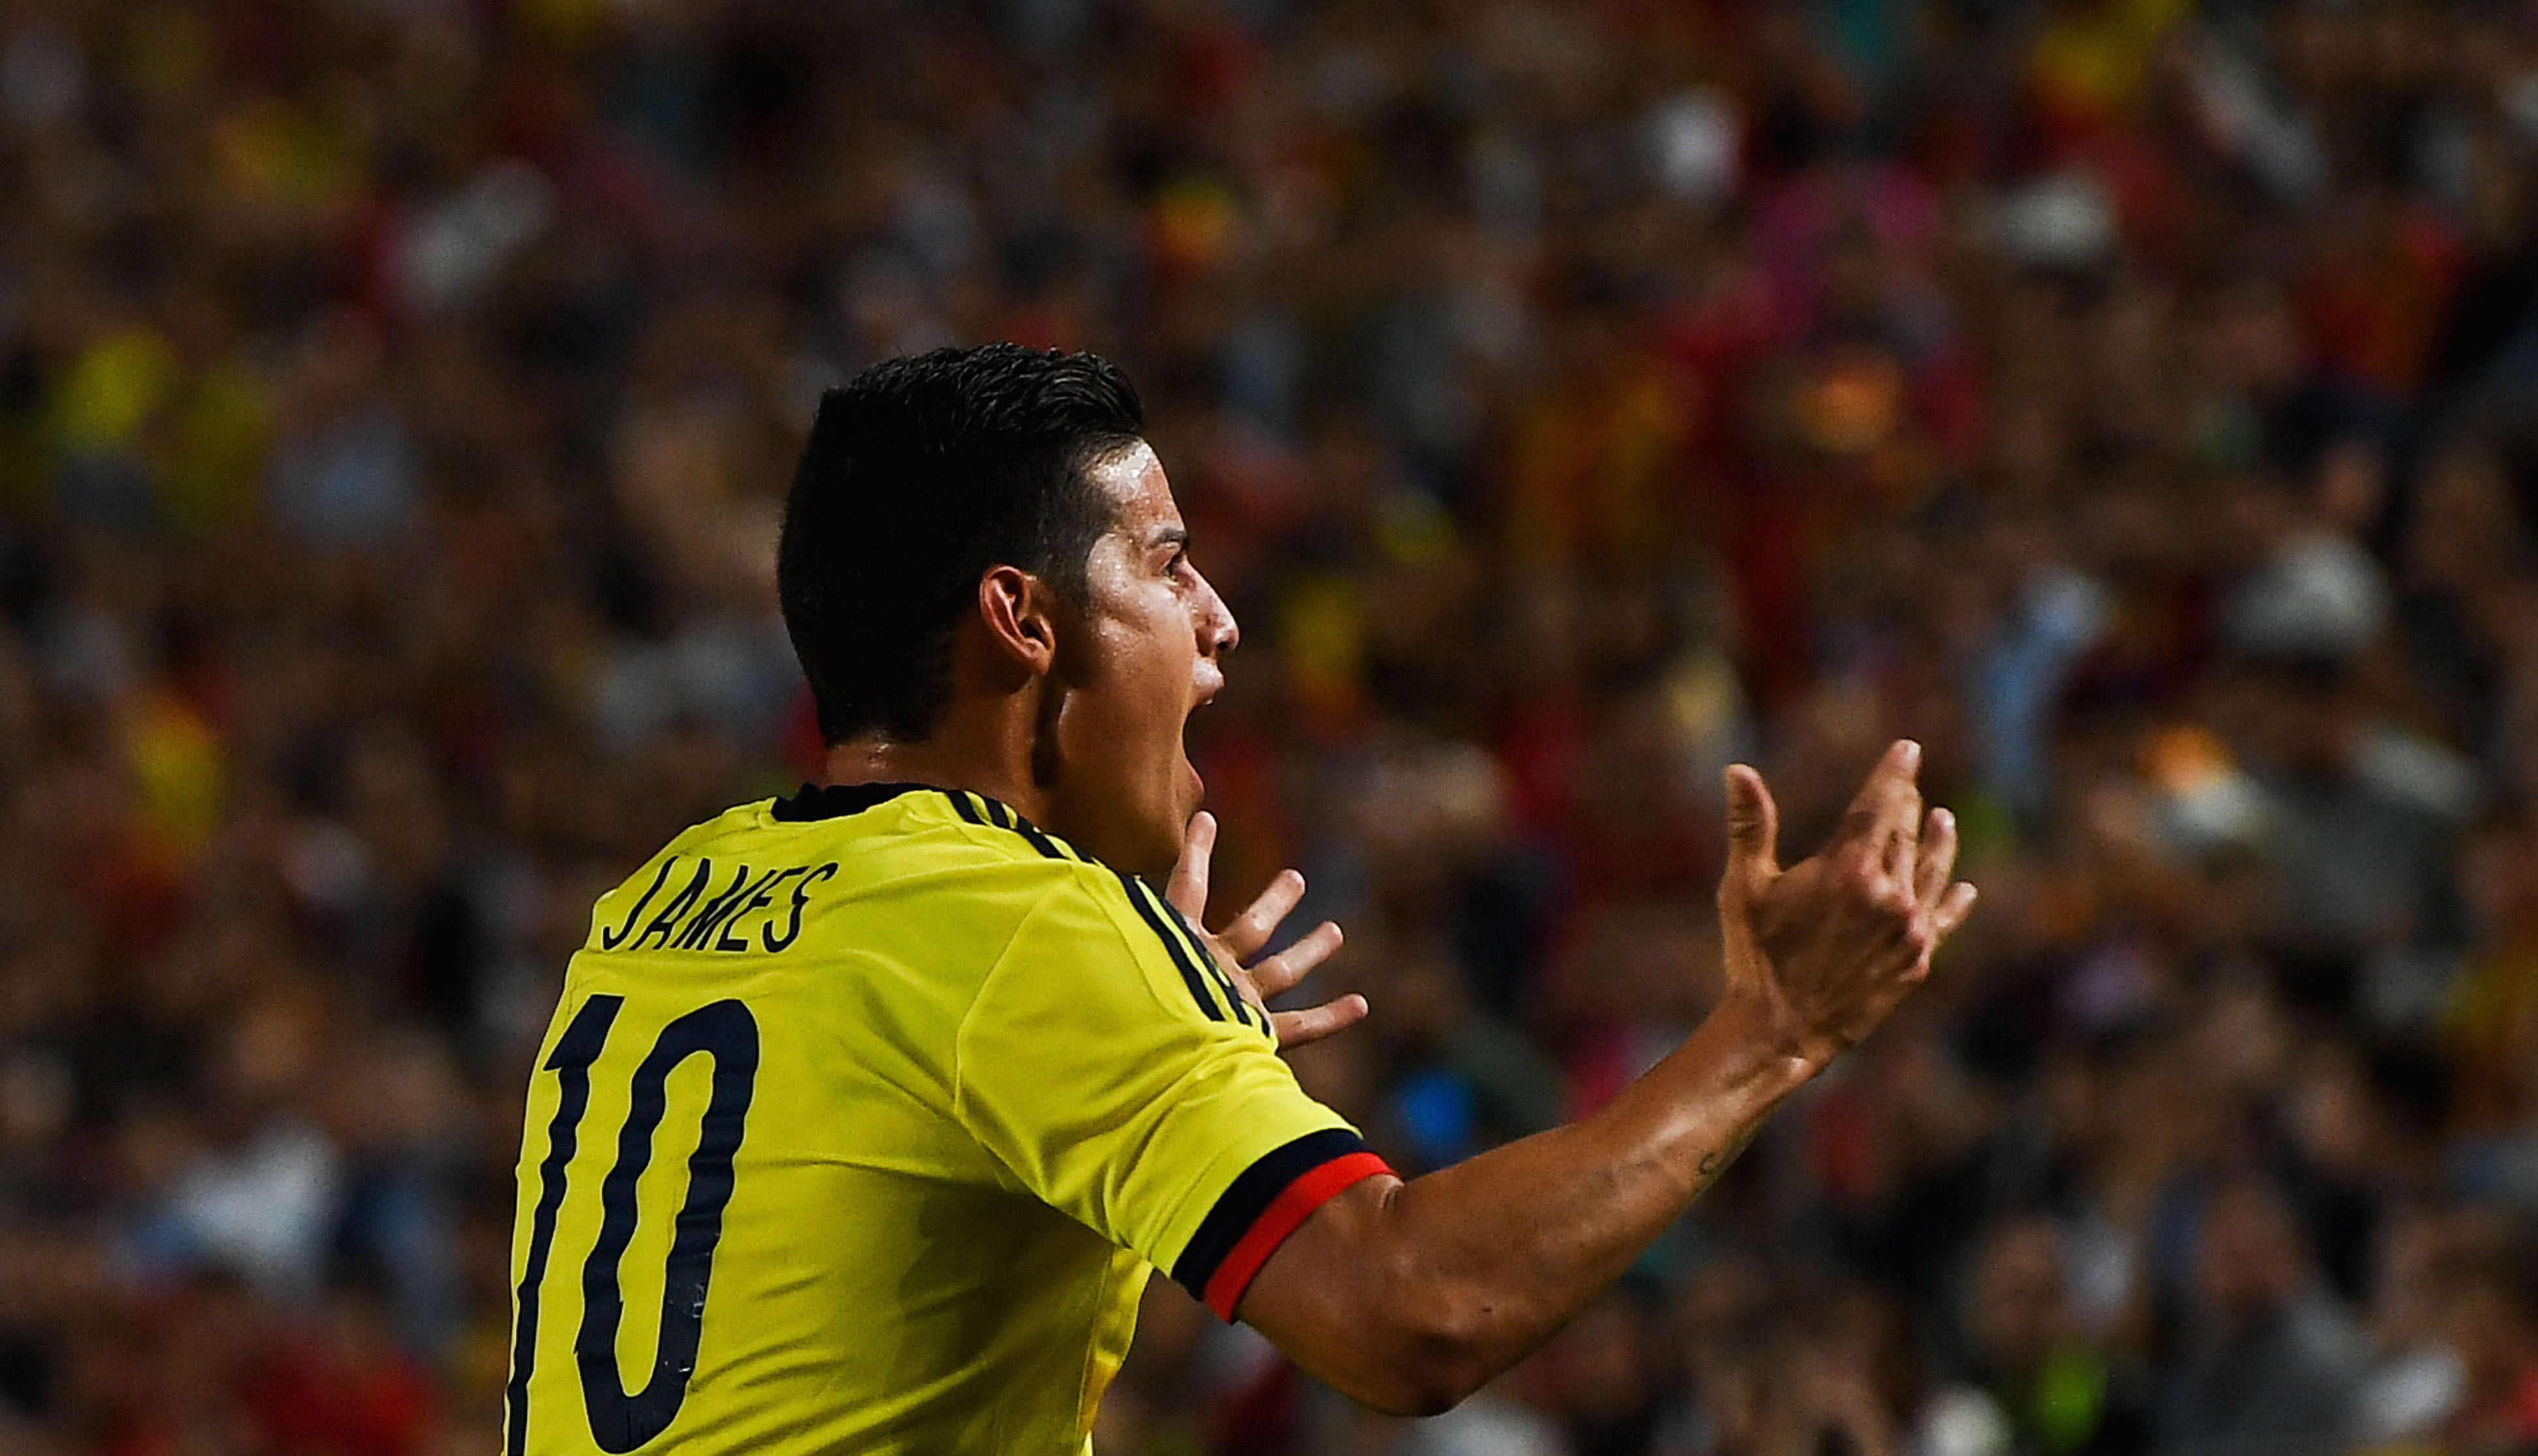 James Rodríguez Is Finally Leaving Real Madrid, And It's About Time